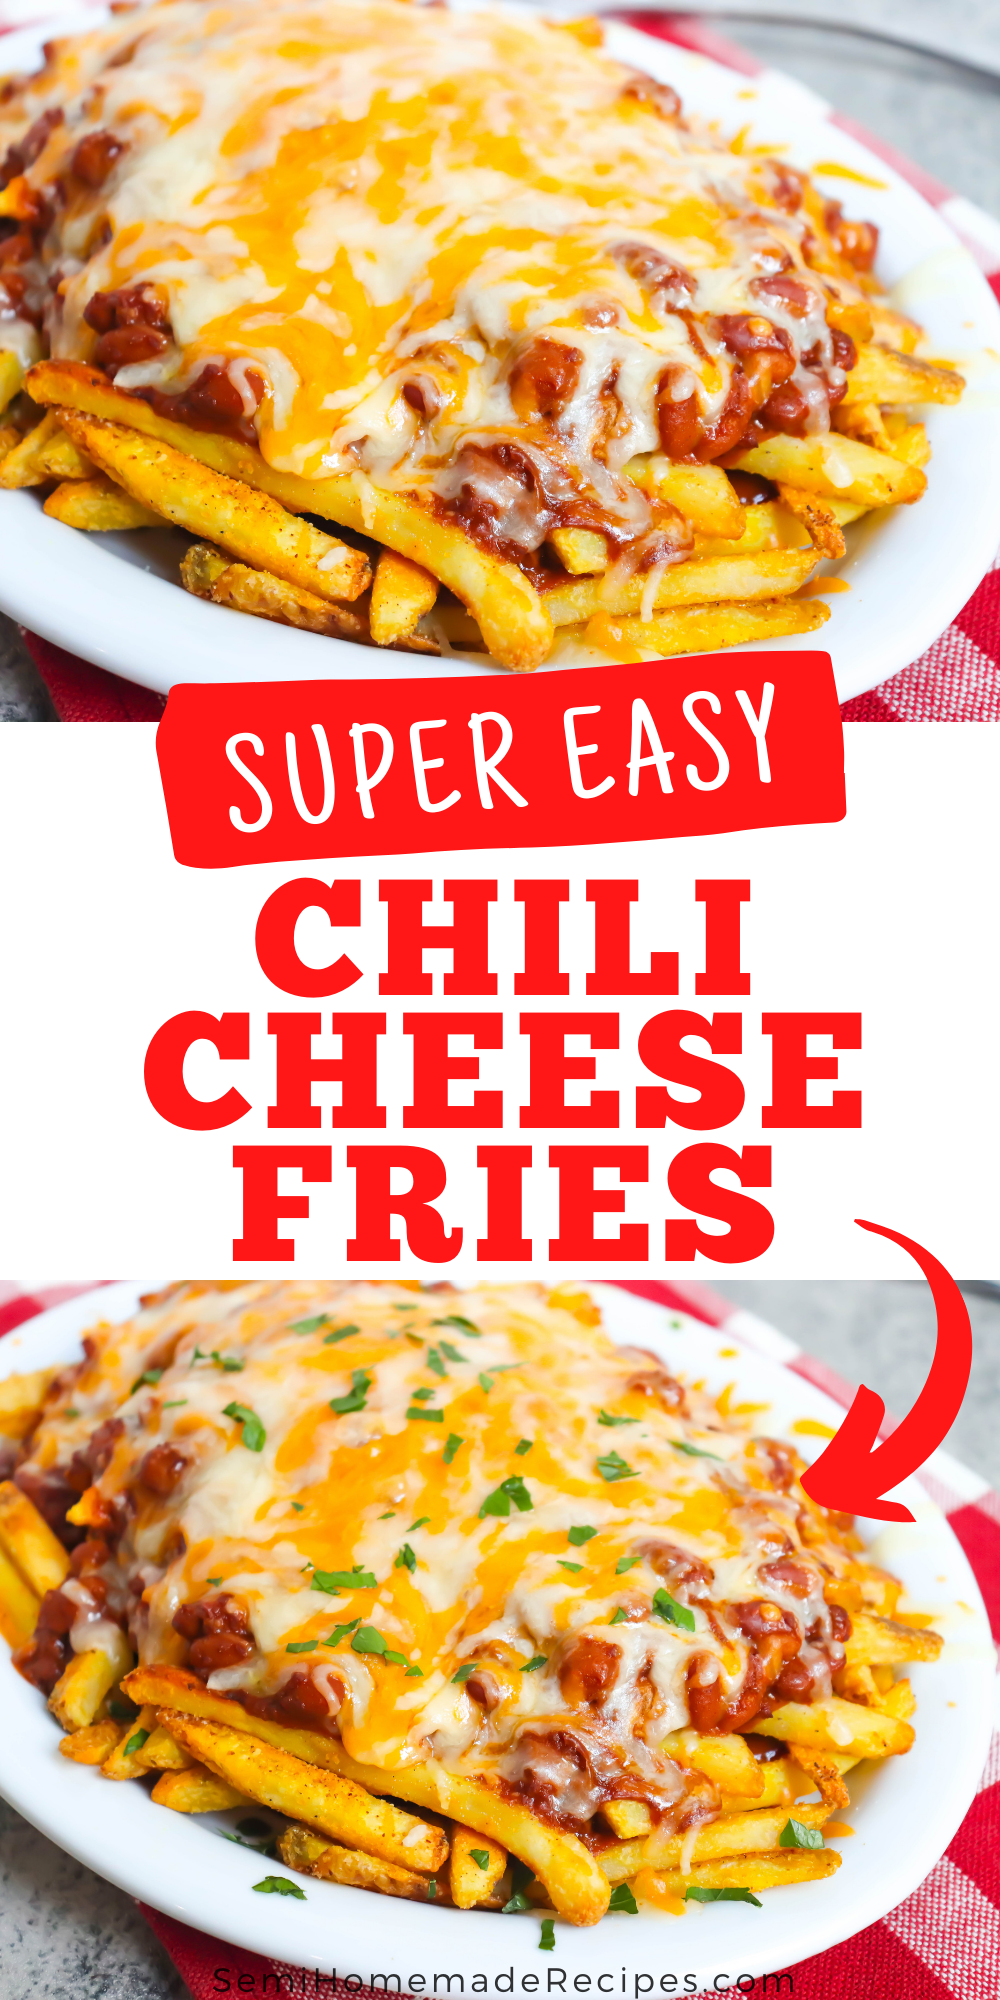 Easy Chili Cheese Fries – This dish is made with baked frozen French fries seasoned with seasoning salt and topped with chili sauce and chili beans Then it is topped with shredded cheese before being placed under the broiler to melt the cheese! Garnish with parsley and enjoy! Great with homemade ranch dressing!